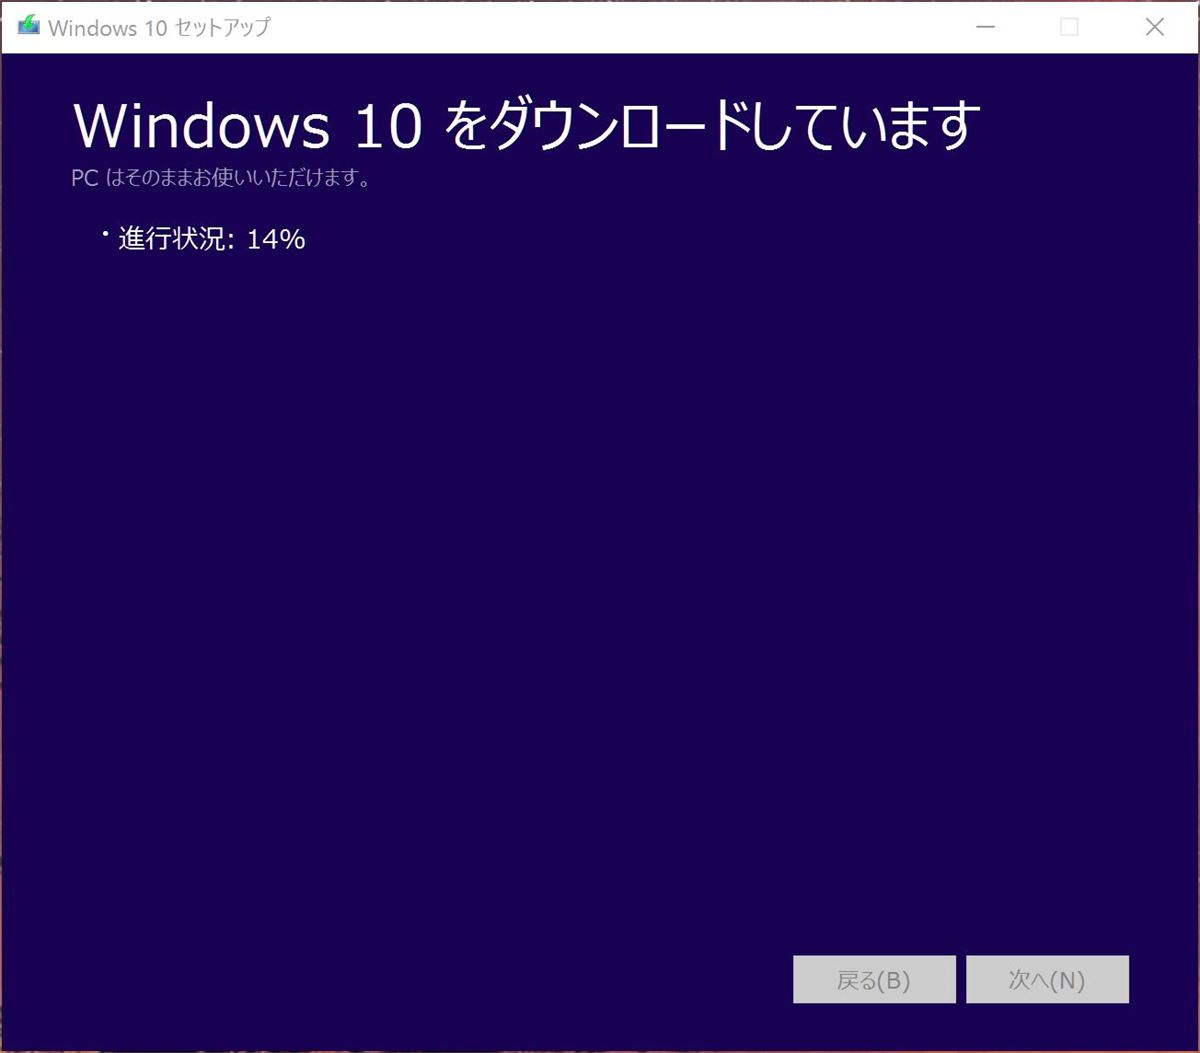 Windows 10 on MacBook - 9